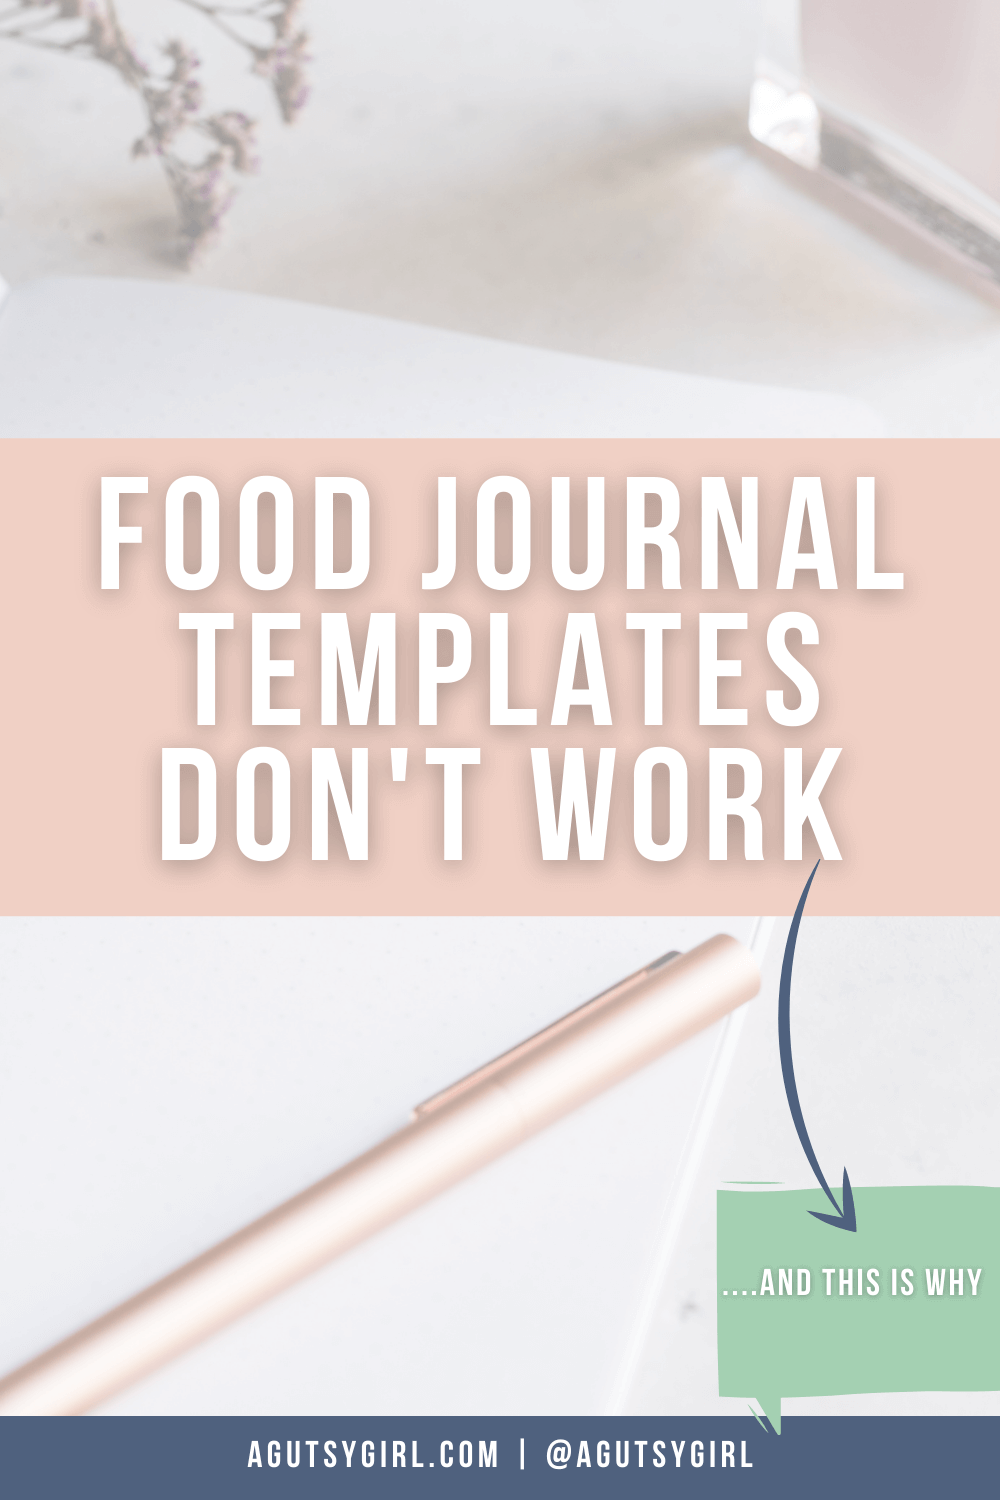 This is why food journal templates don't work agutsygirl.com #guthealth #foodjournal #foodjournals #eliminationdiet